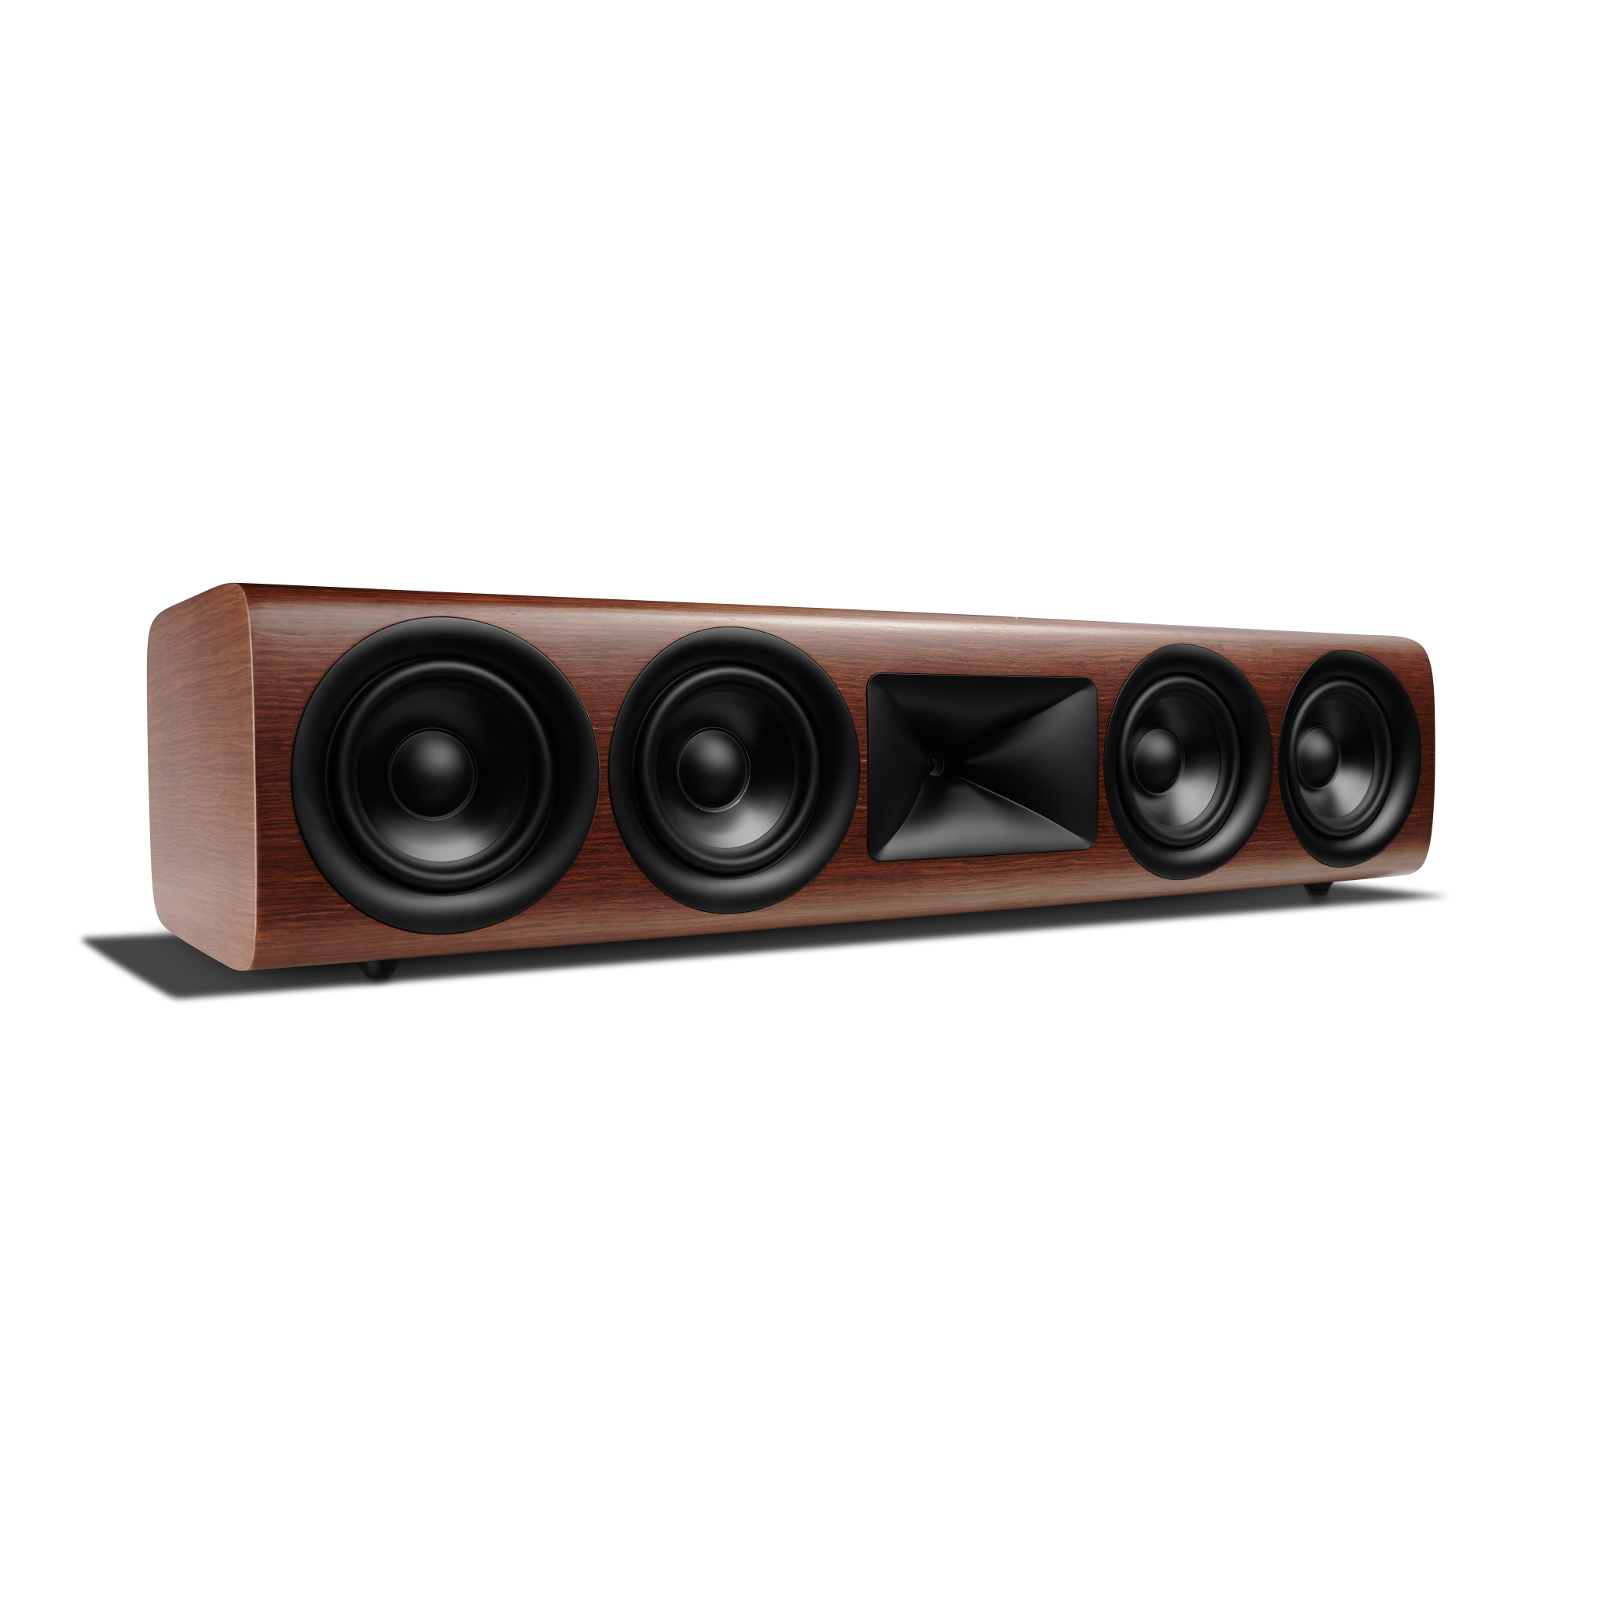 HDI-4500 - Walnut - 2 ½-way Quadruple 5.25-inch (130mm) Center Channel Loudspeaker - Left